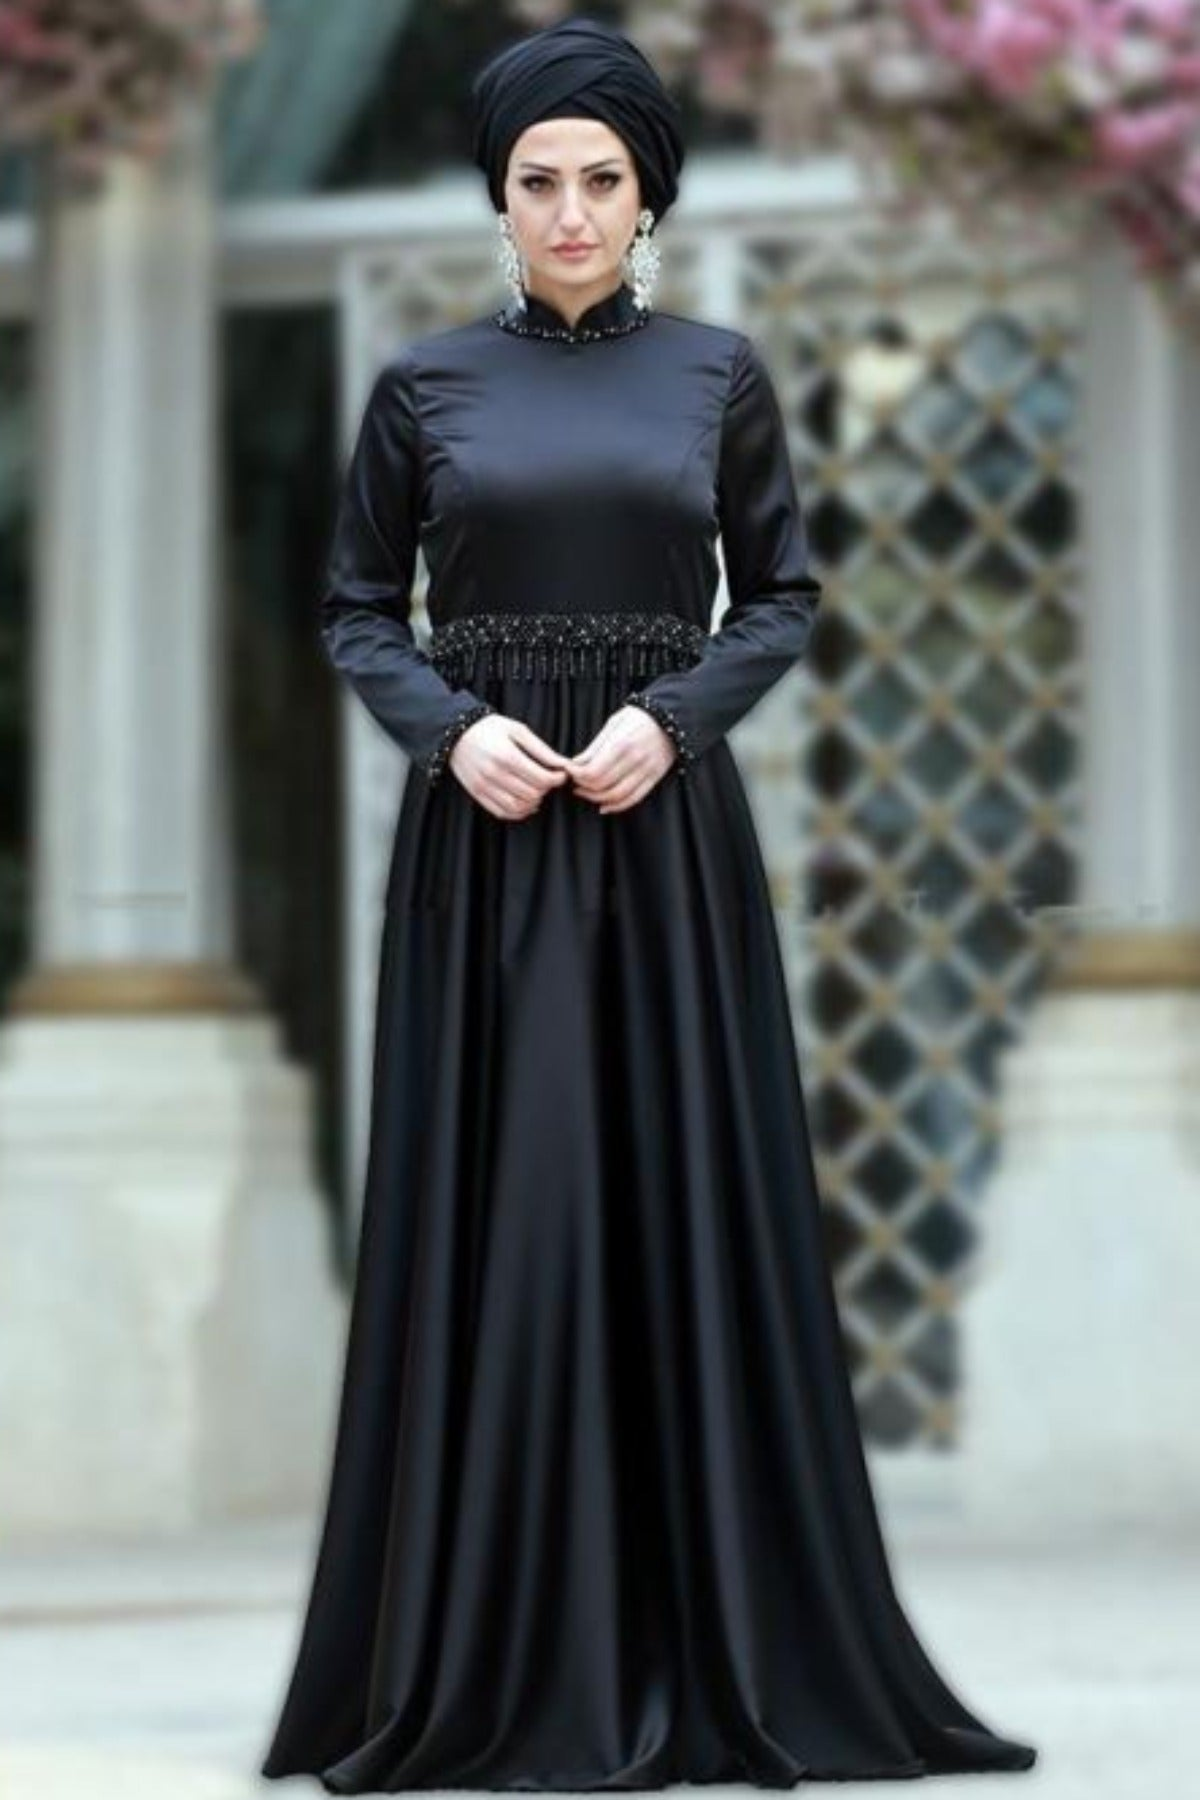 Gemmed Evening Dress